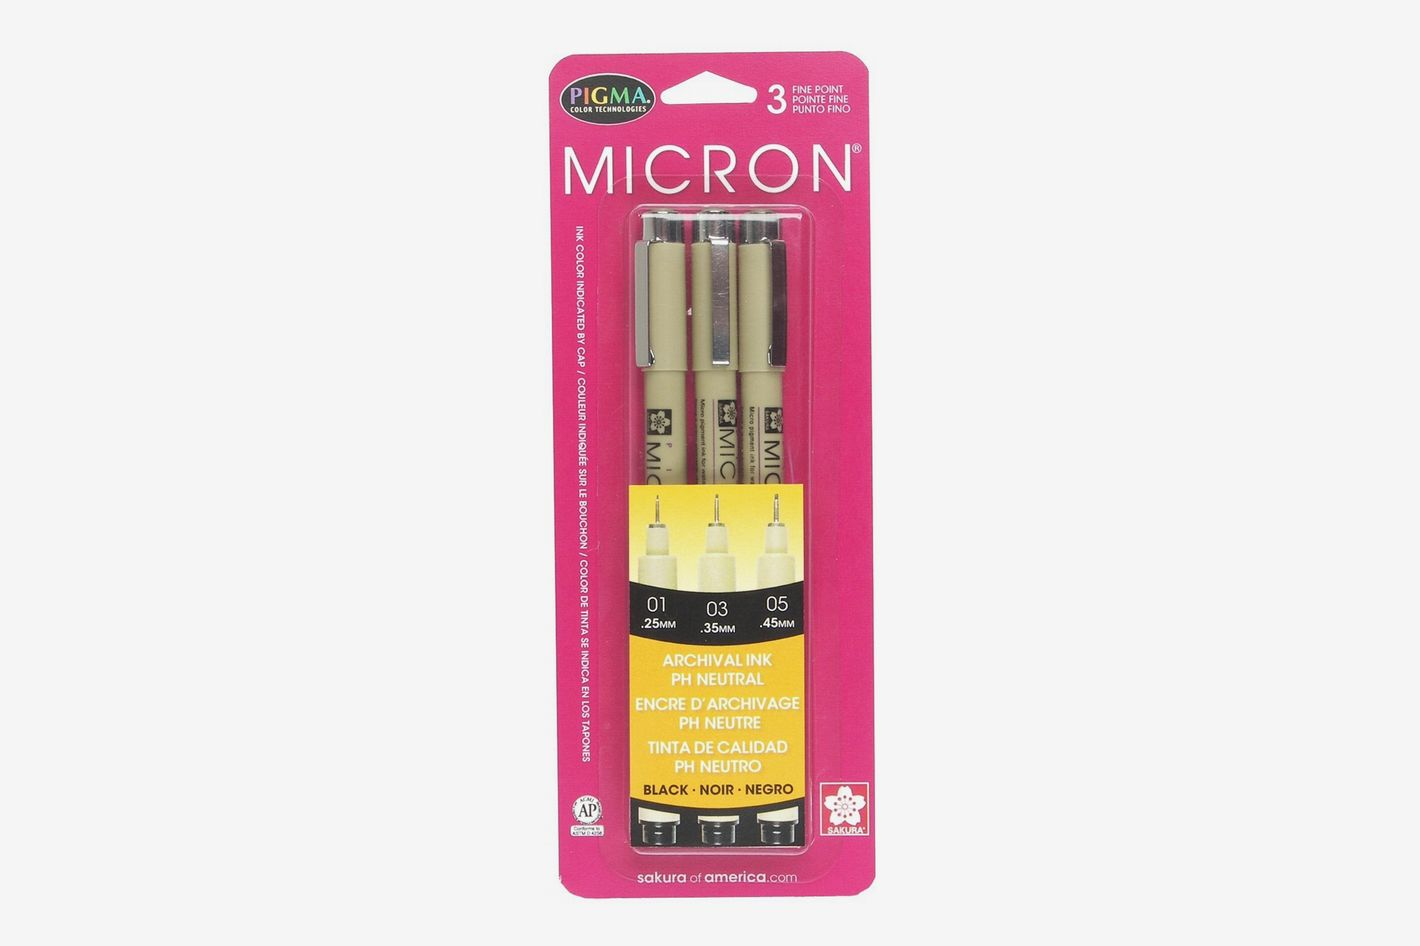 Sakura Pigma Micron Blister Card Ink Pen Set, 3 Assorted Sizes